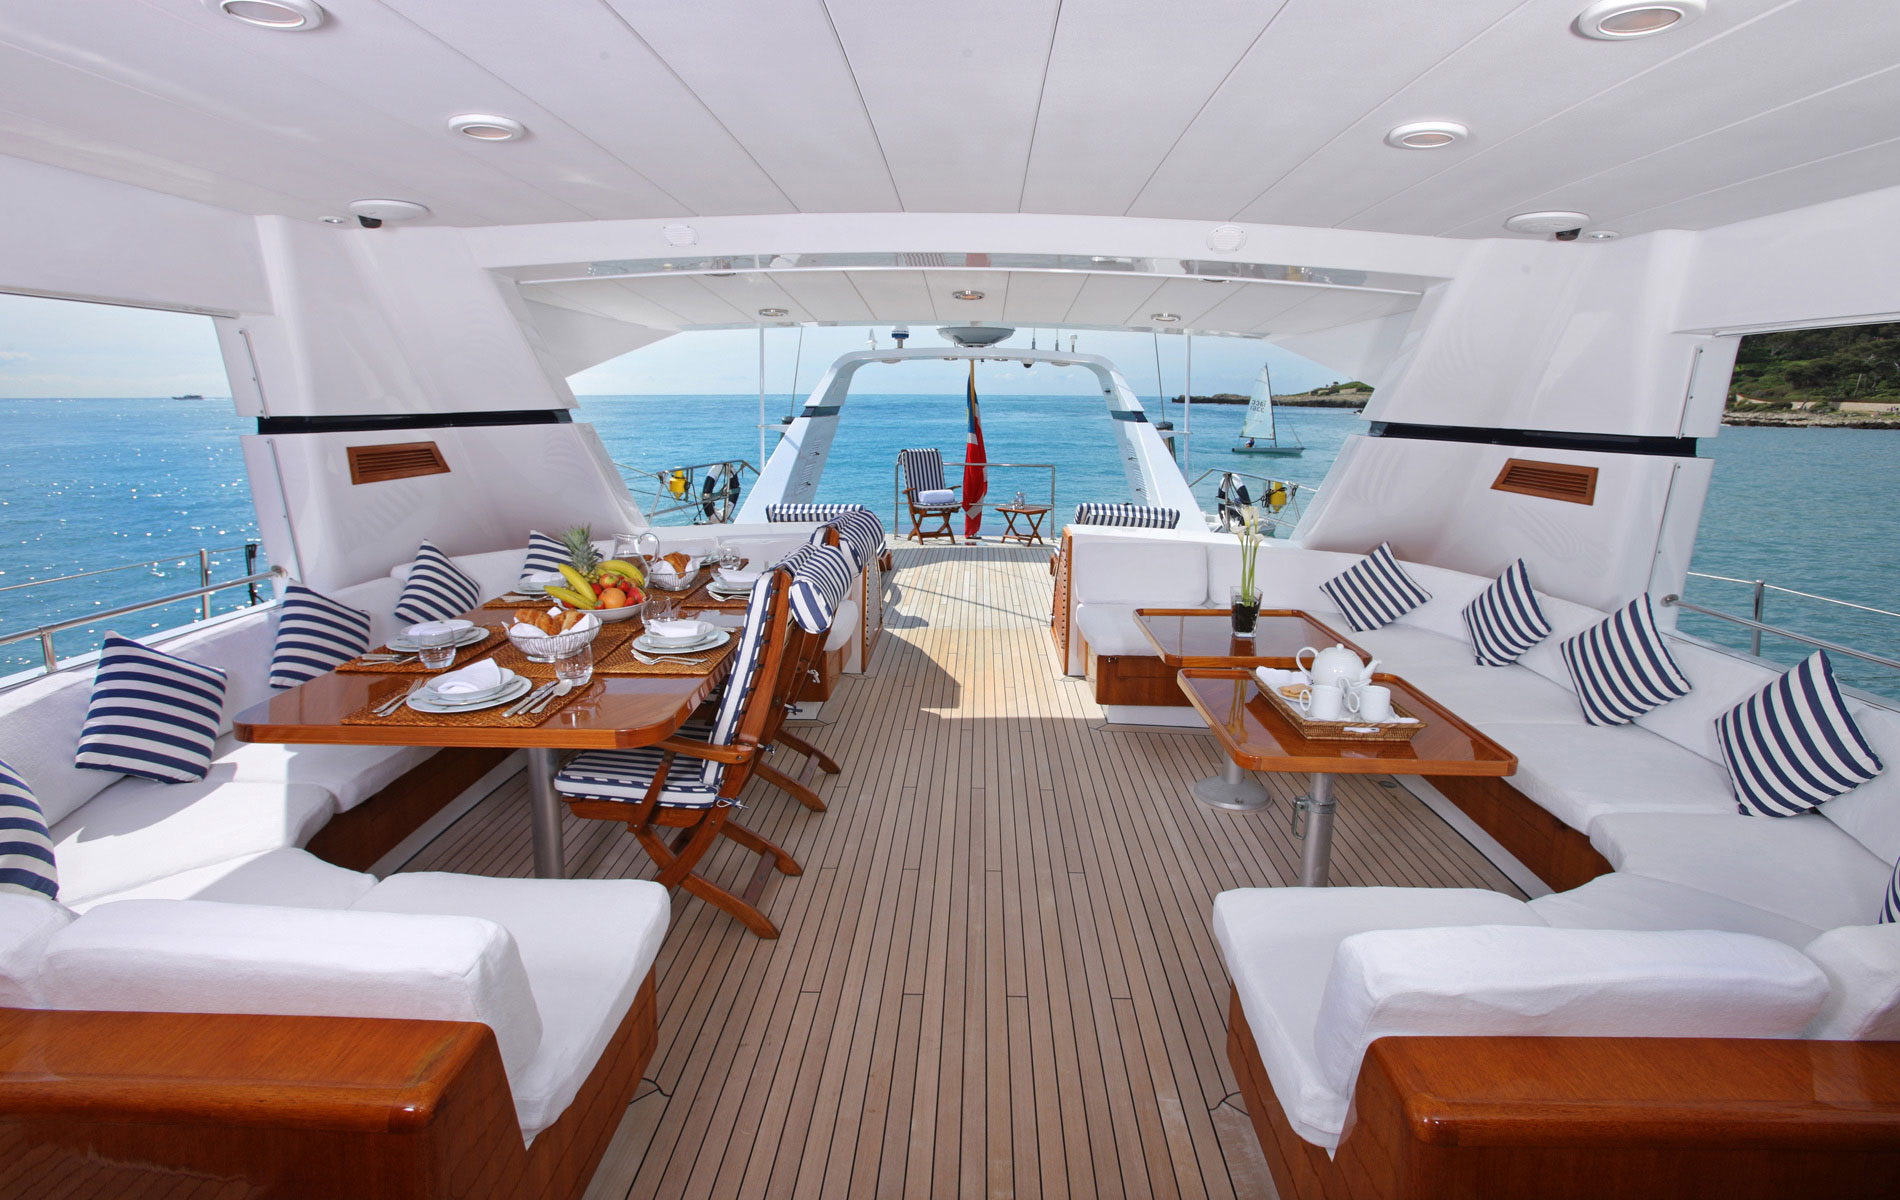 Upgrade your experience and live at ease while at sea